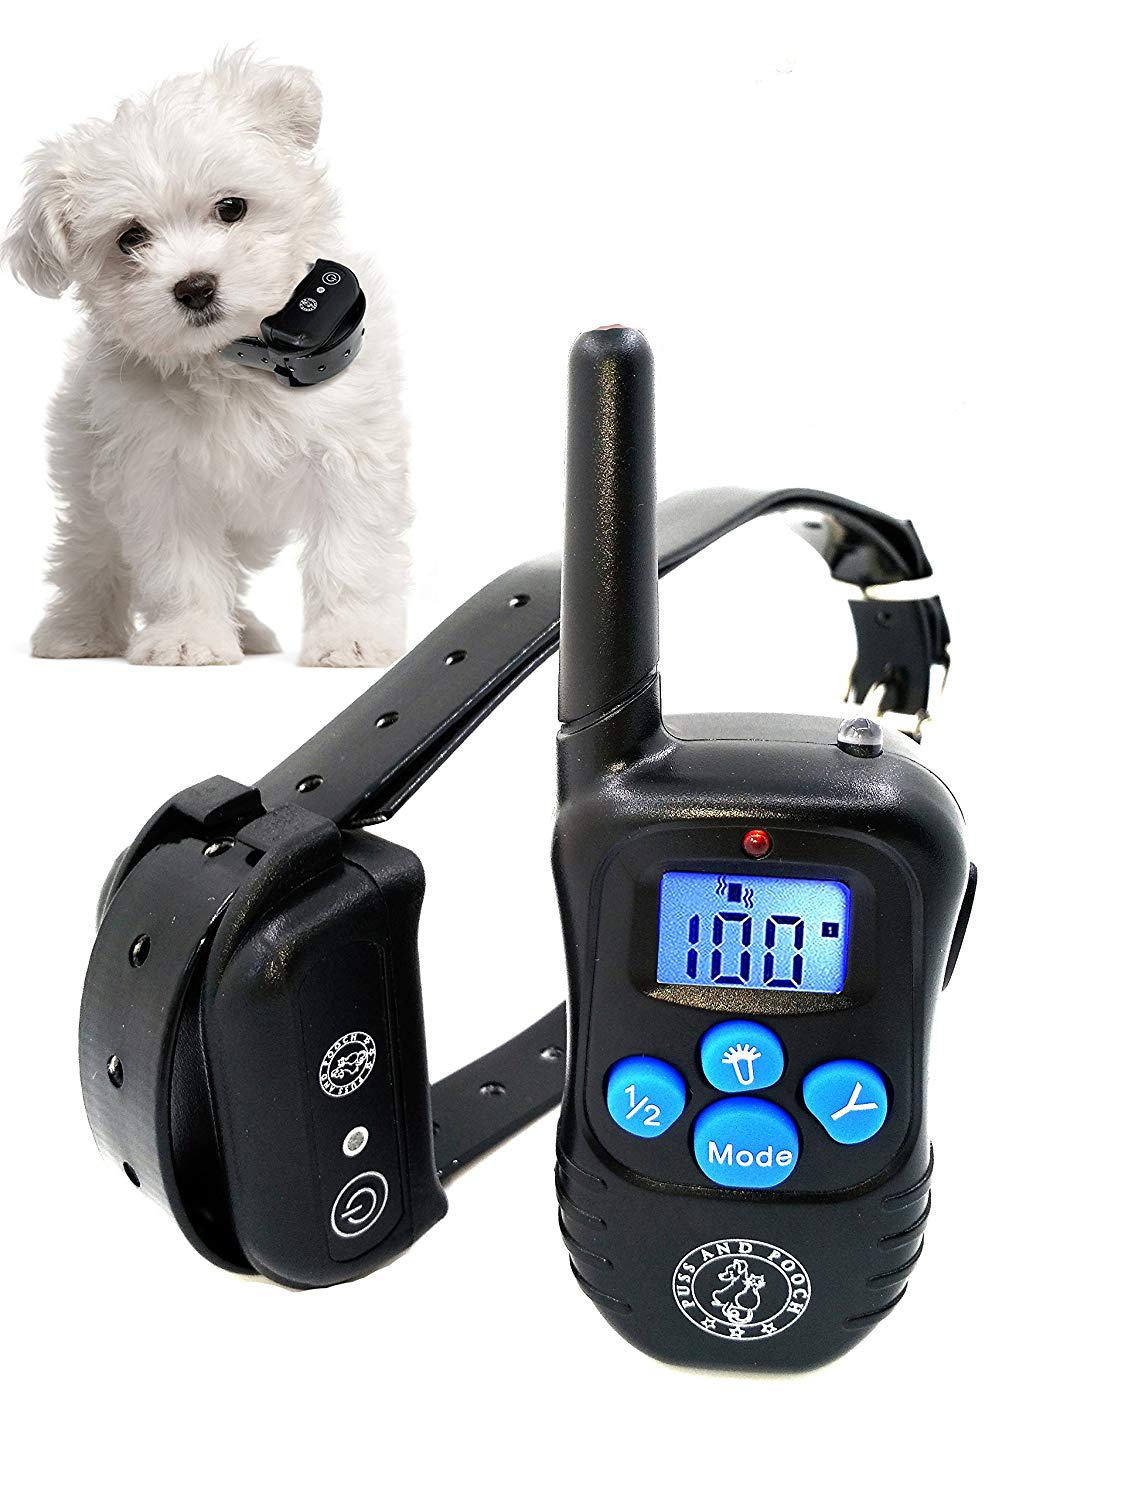 Shock Collar for Dogs Waterproof Dog Training Collar with